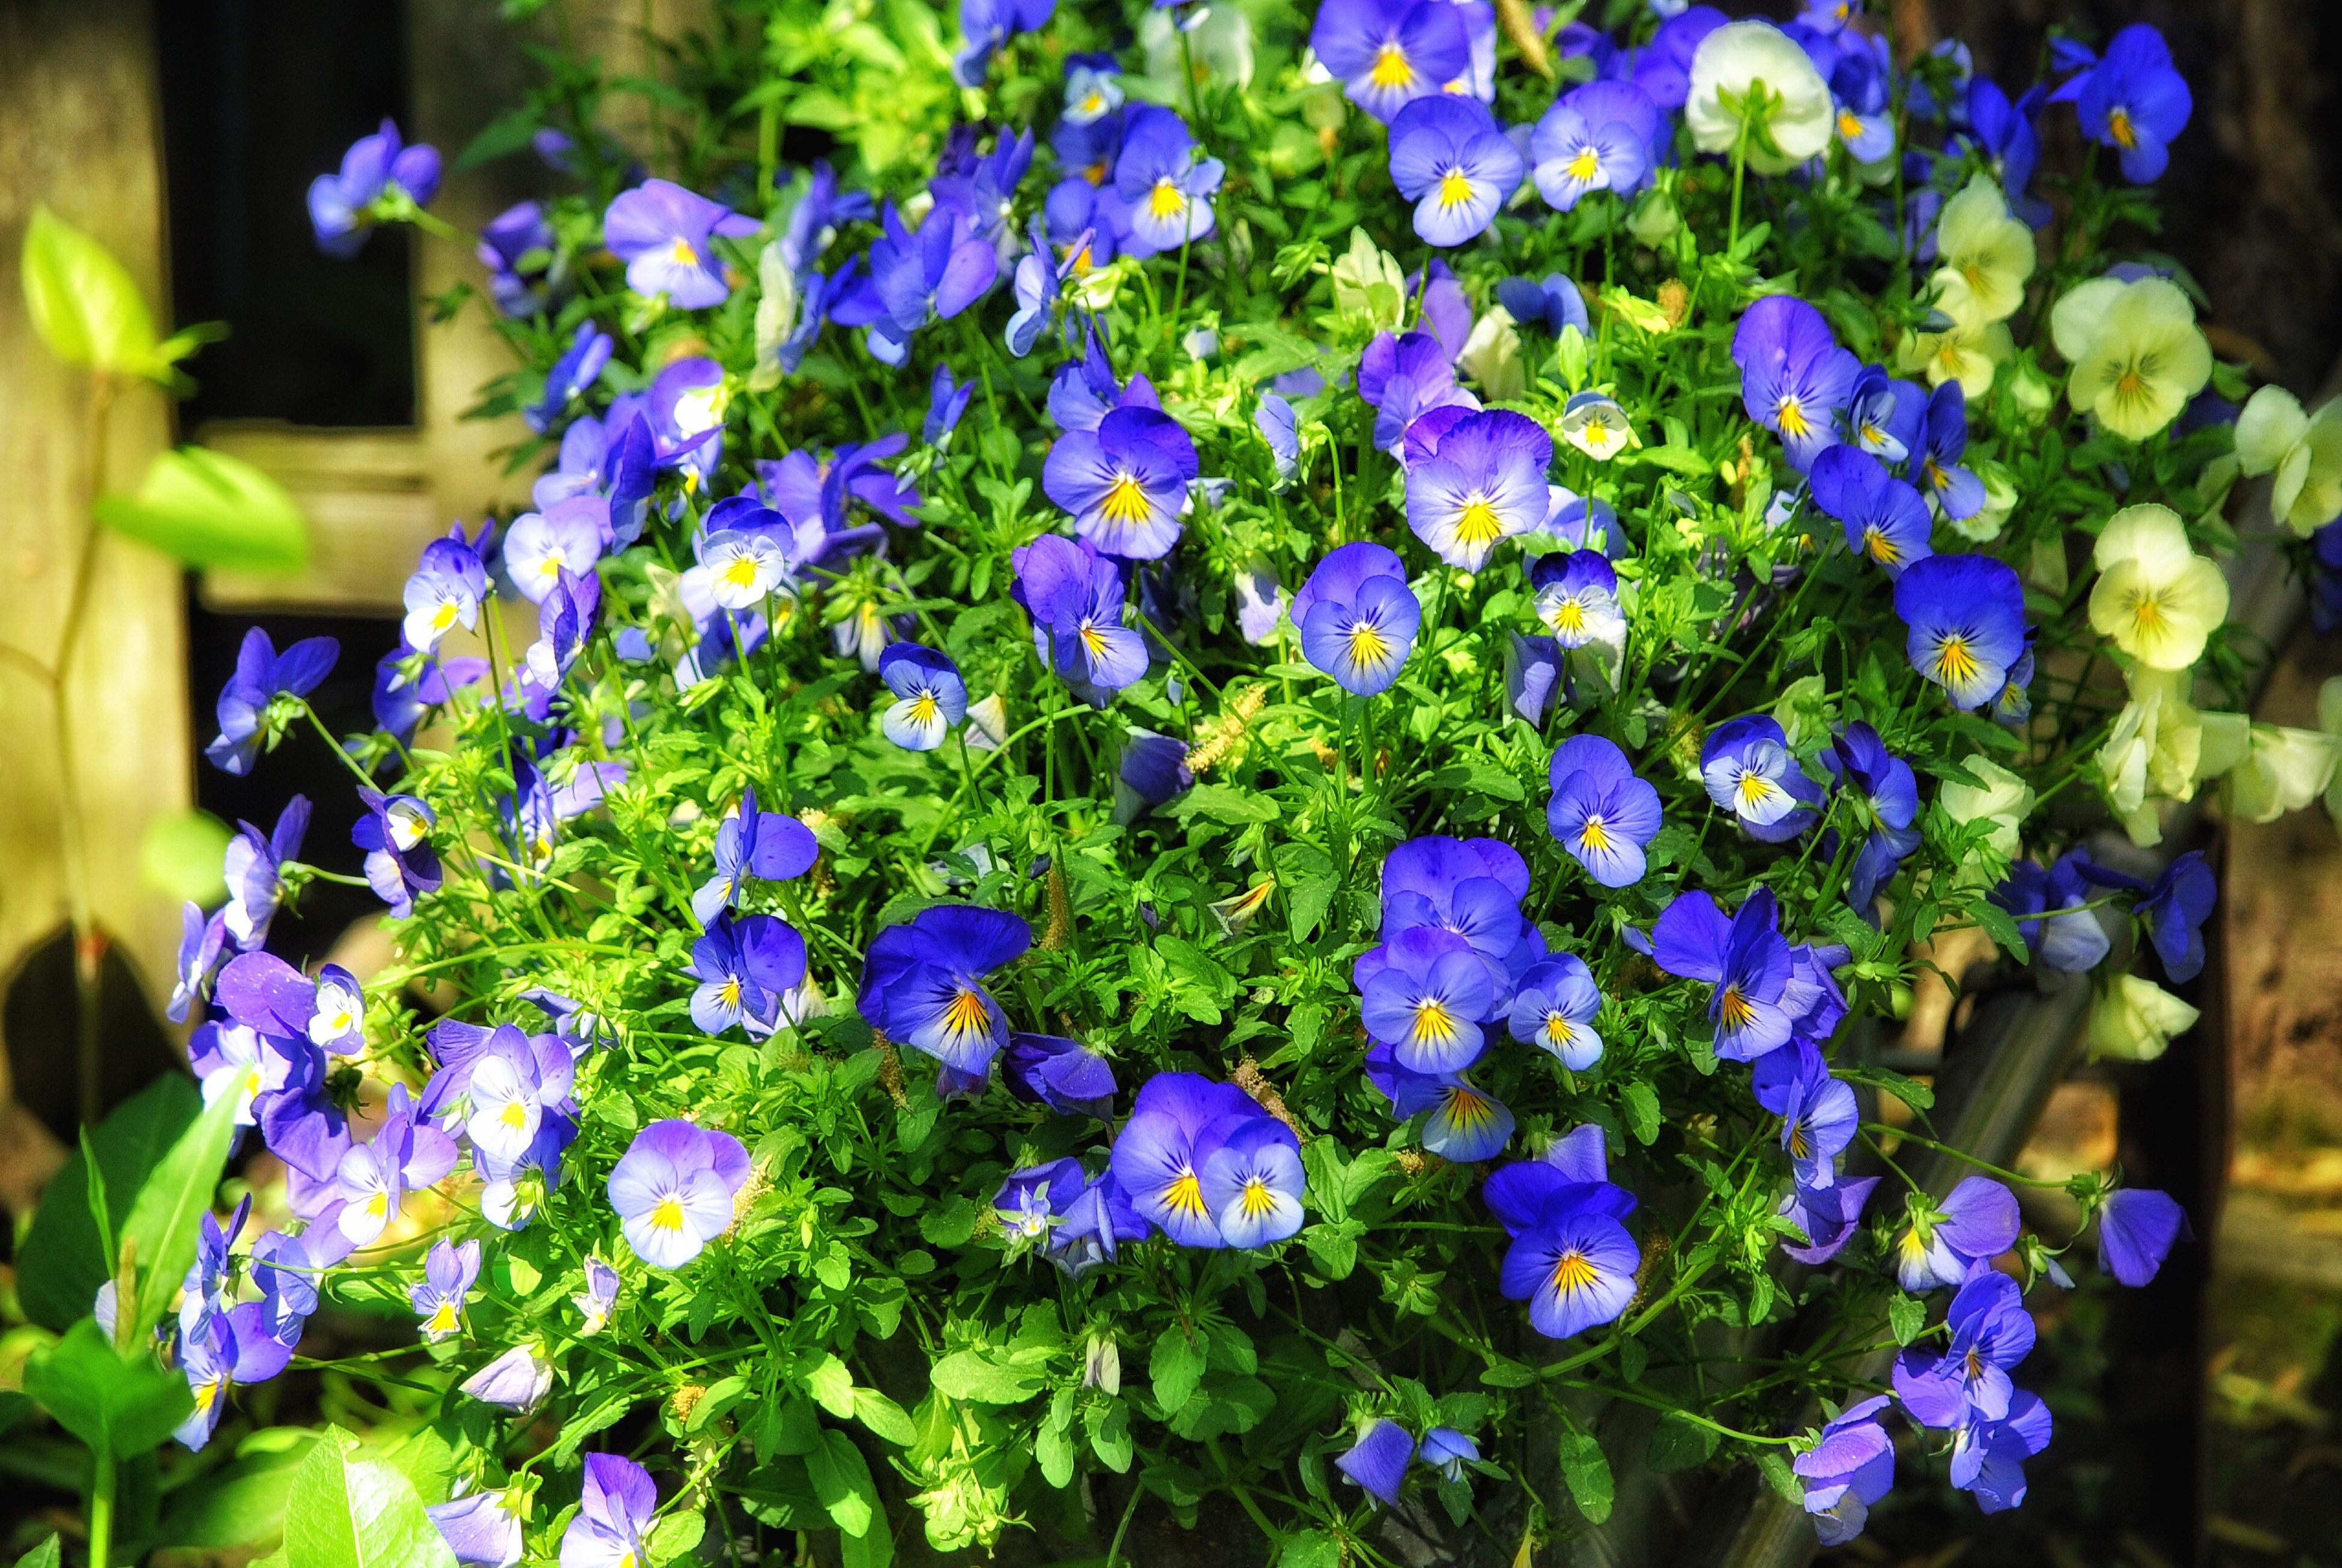 flower, purple, freshness, growth, fragility, beauty in nature, petal, plant, blooming, nature, flower head, close-up, in bloom, focus on foreground, park - man made space, blue, leaf, field, botany, high angle view